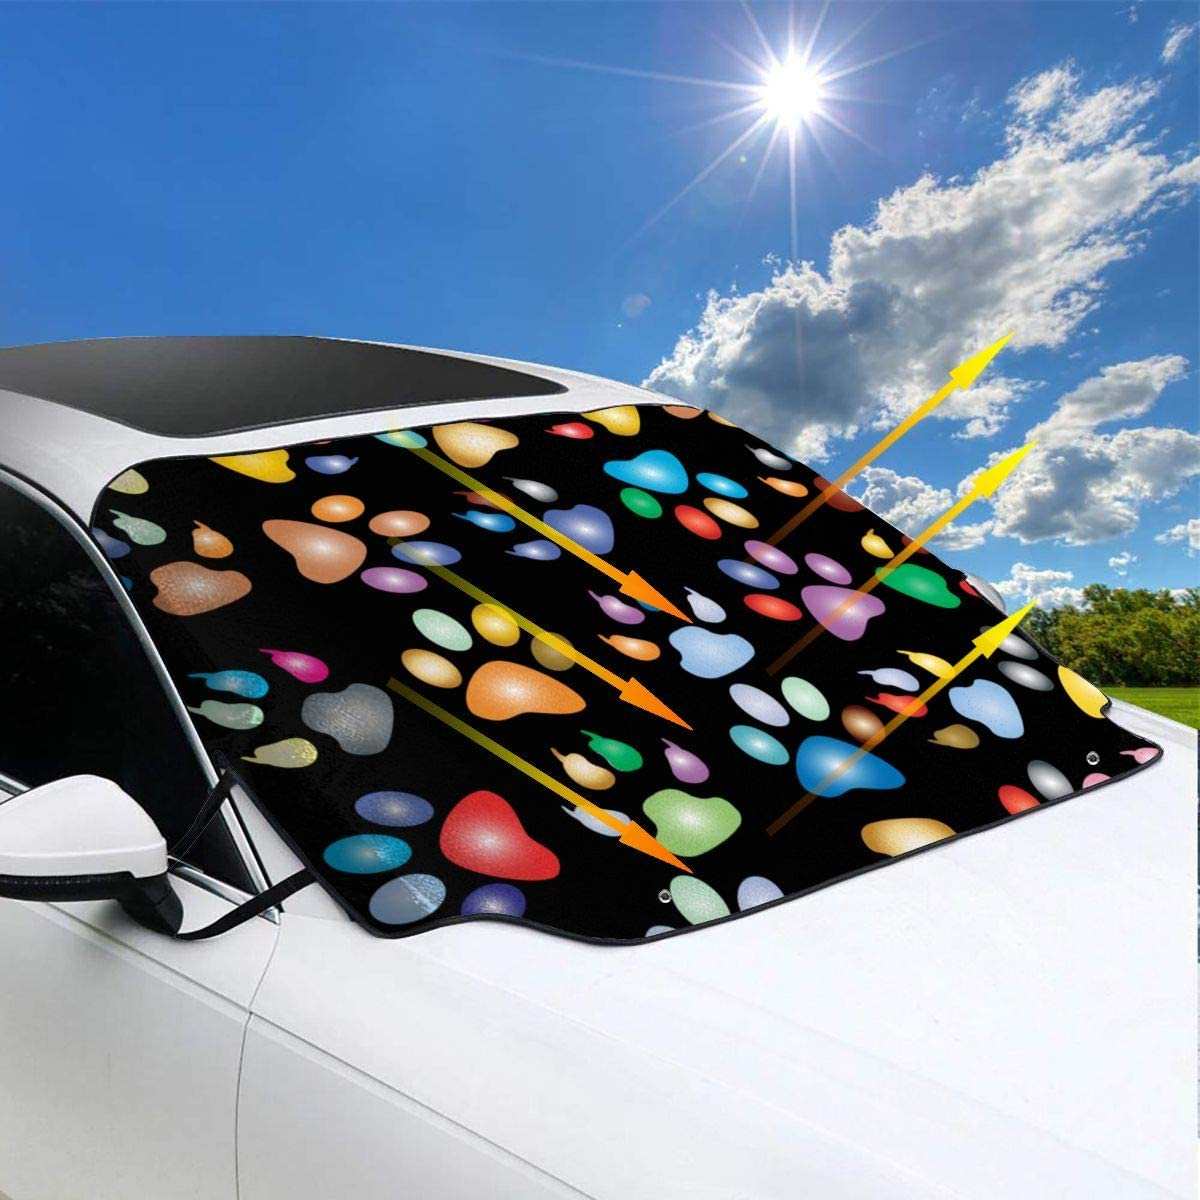 Frost Guard Winter Windshield Snow Ice Cover 57.9x46.5inch AutoSnow Windshield Visor Protector for Most Cars All Weather Waterproof Colorful Paw Prints Pattern Car Windshield Snow Cover